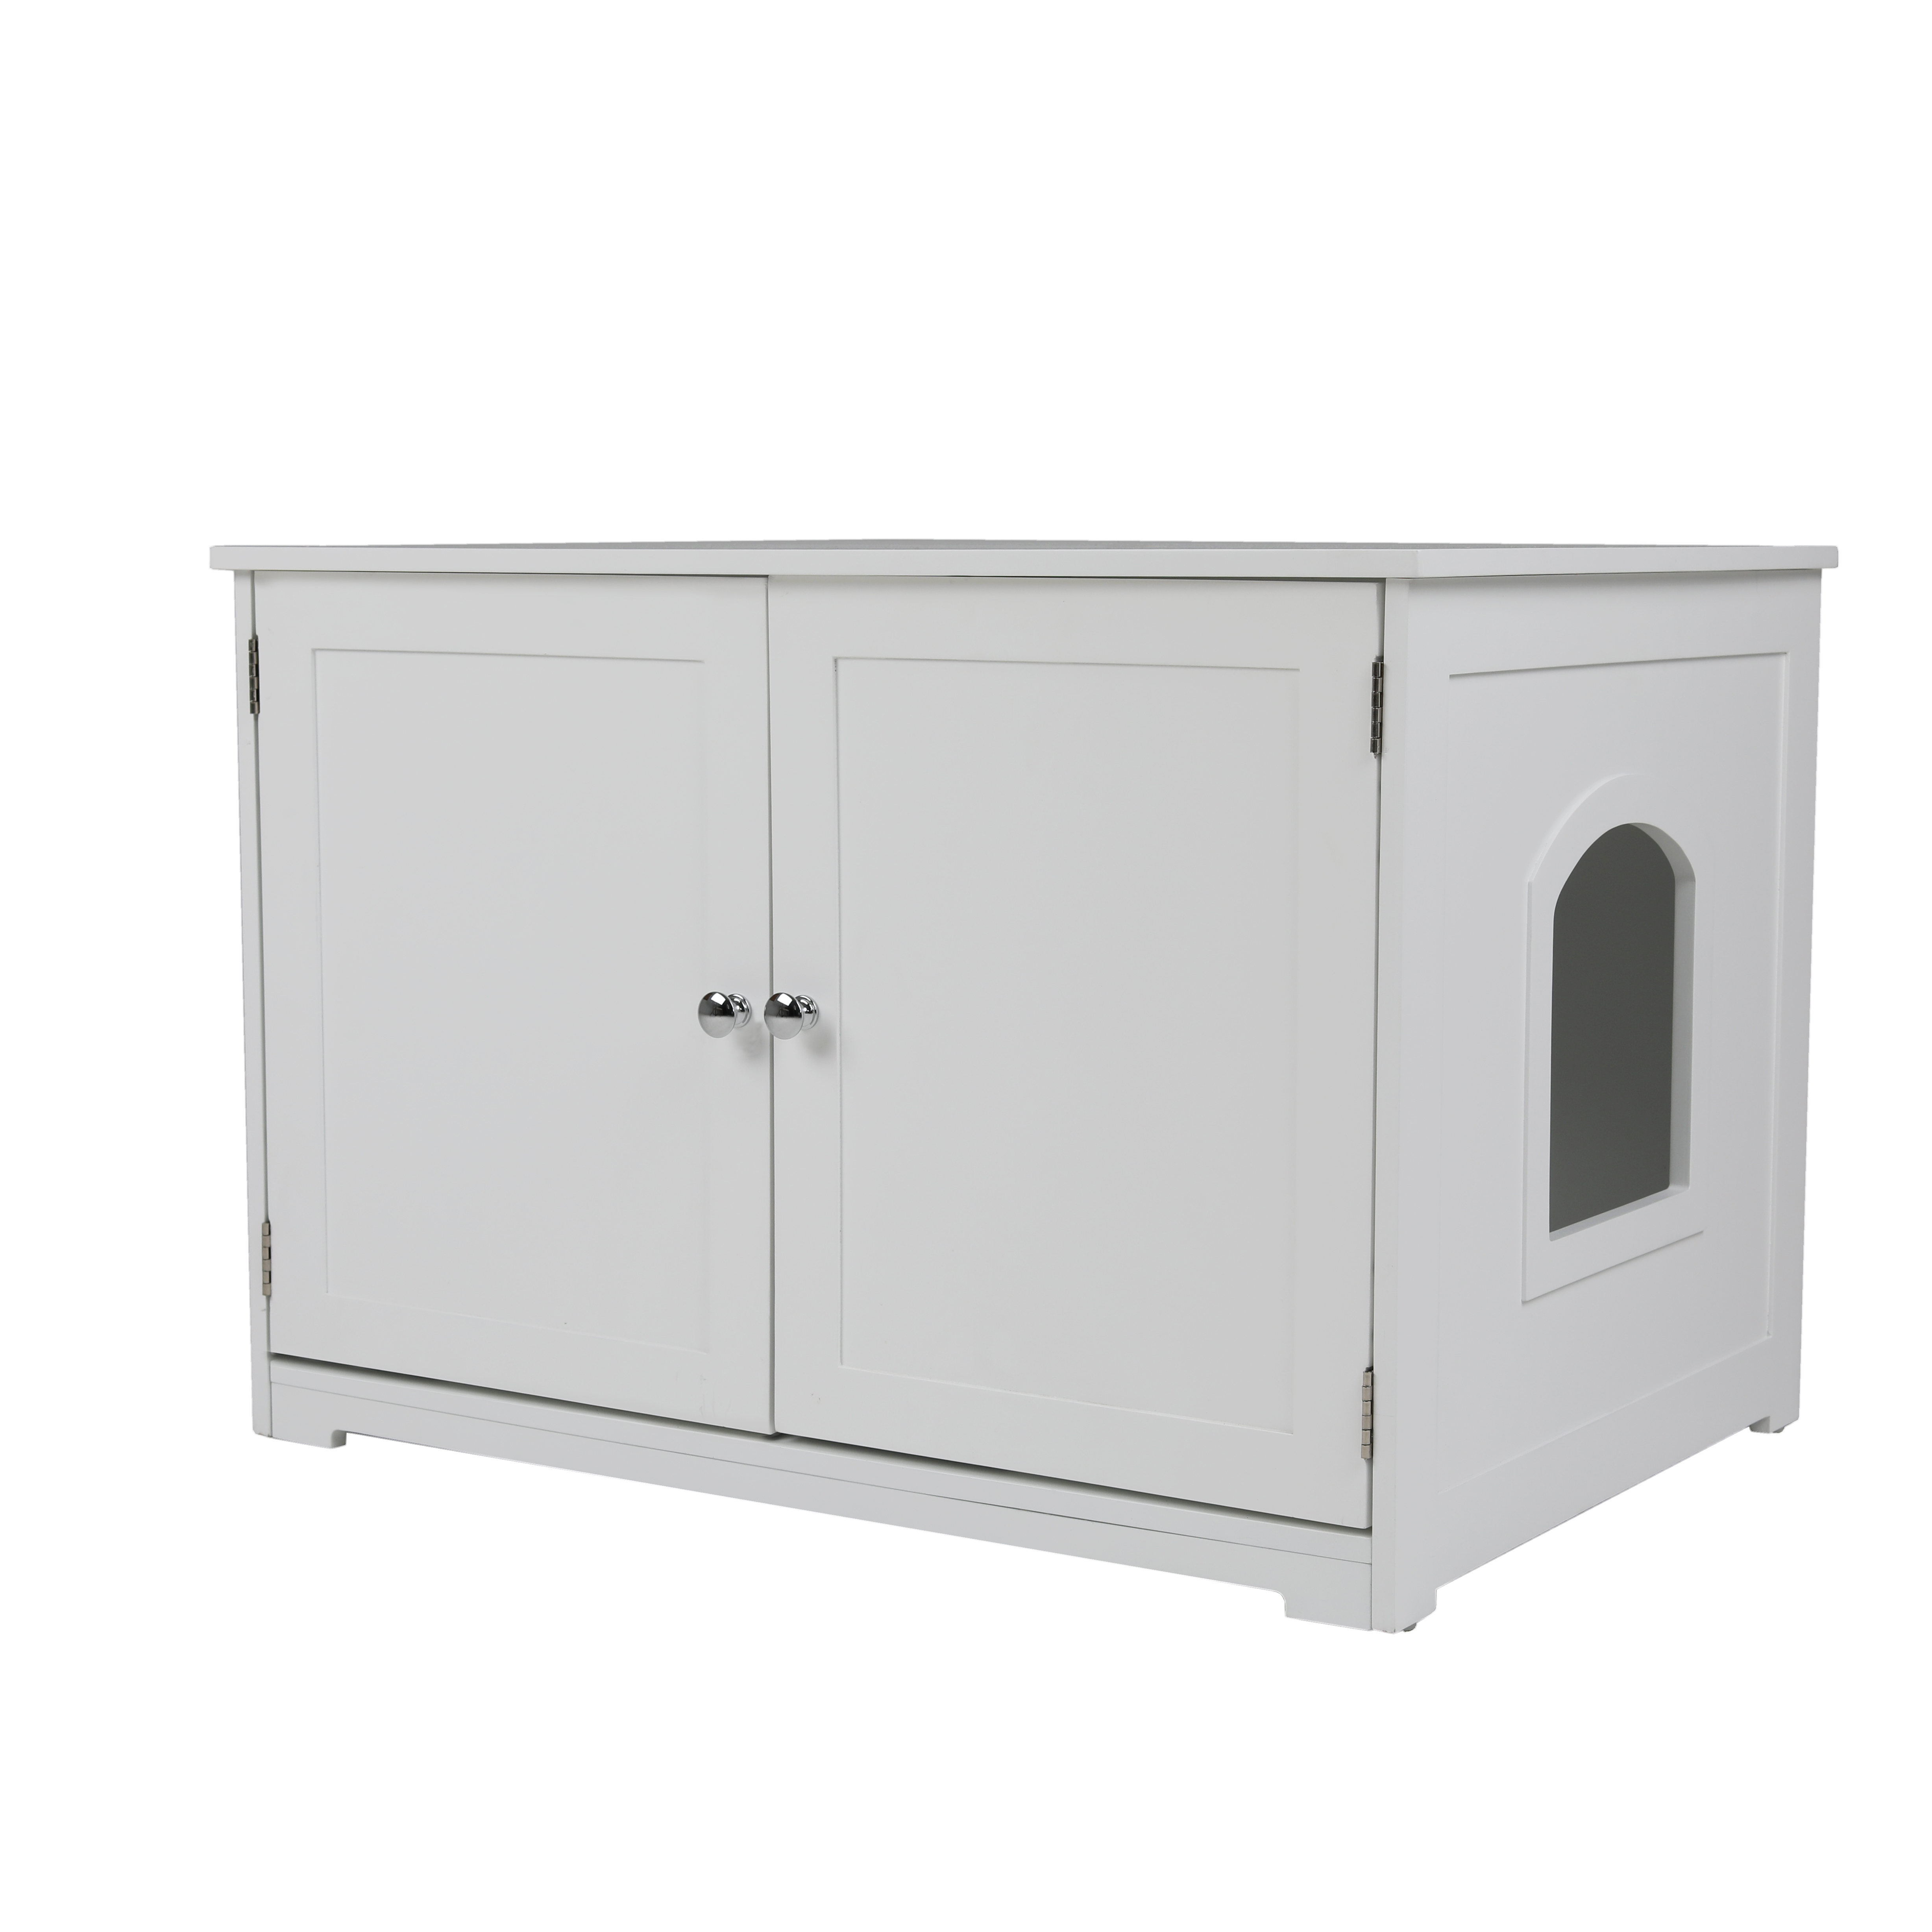 Kitty Litter Loo Bench in White - Zoovilla PTH1051720100